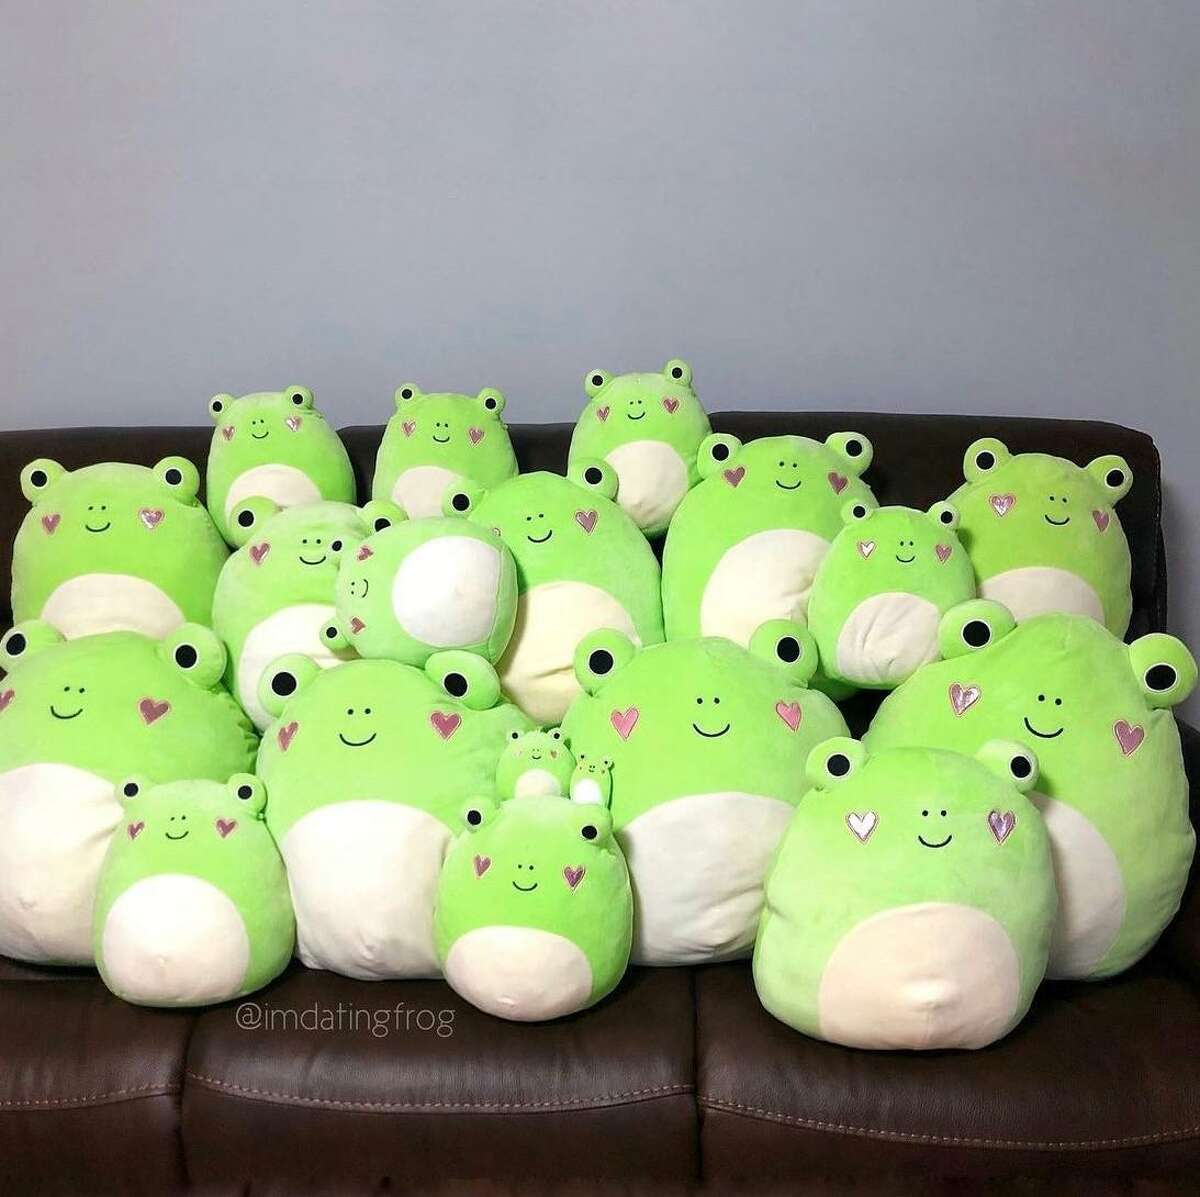 A small sample of the more than 200 mostly frog Squishmallow owned by Jessica Dao,. She started collecting in November and has bought and traded with collectors across the United States and as far away as Canada, Australia, Mexico and the Philippines.